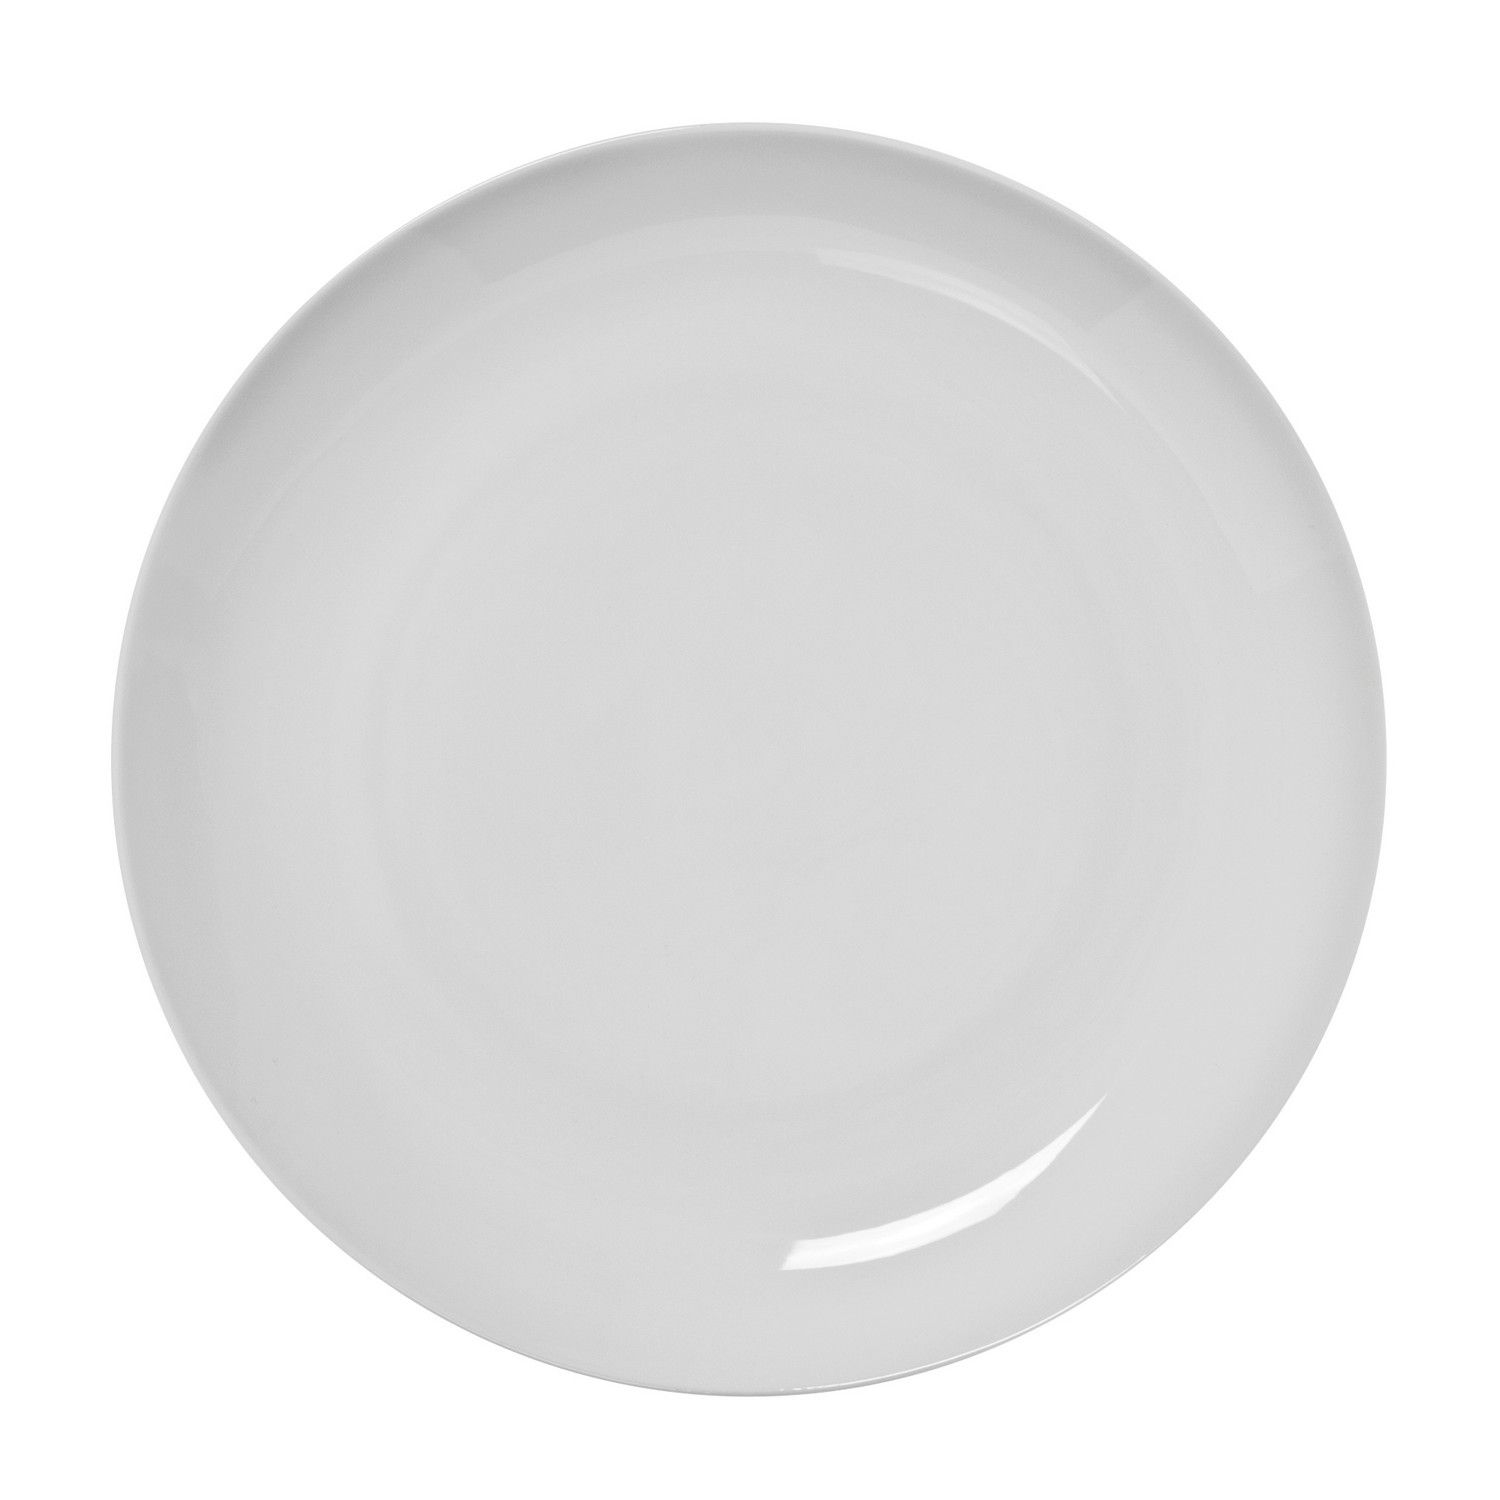 13 4l X 1 1 4h Royal Coupe White Dinner Plate Case Of 24 Dinner Plates Plates White Dinner Plates